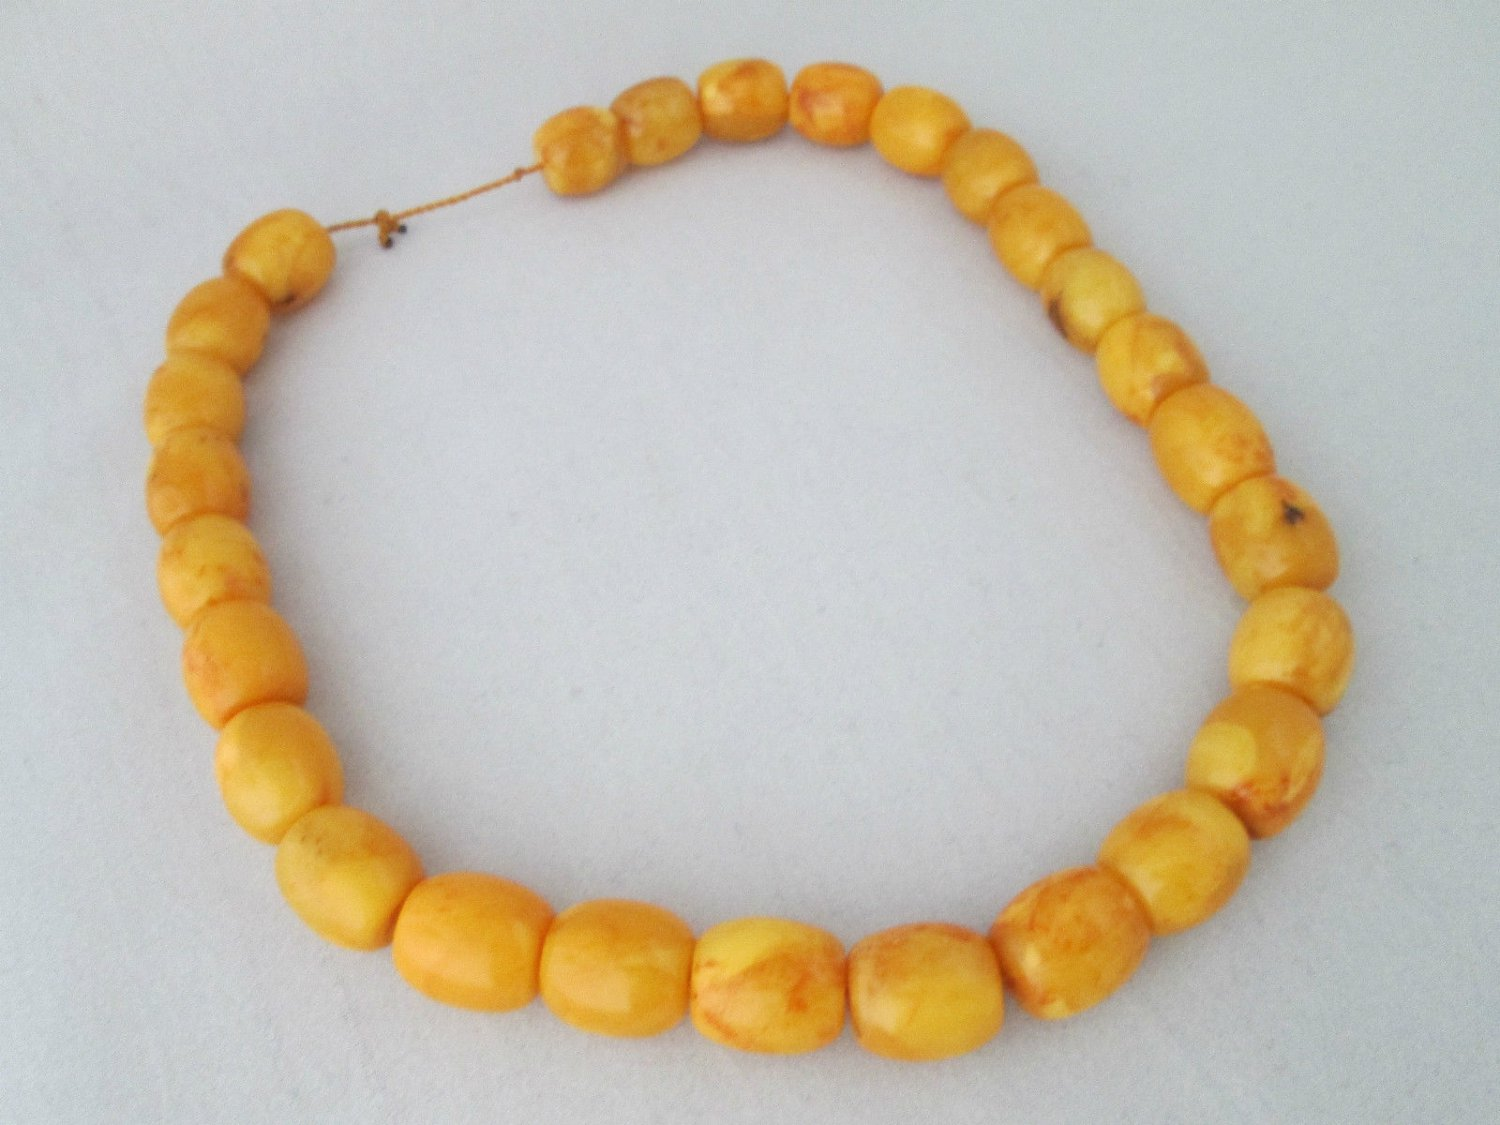 Vintage Large Natural Butterscotch Egg Yolk Amber Bead Necklace 66.5 grams